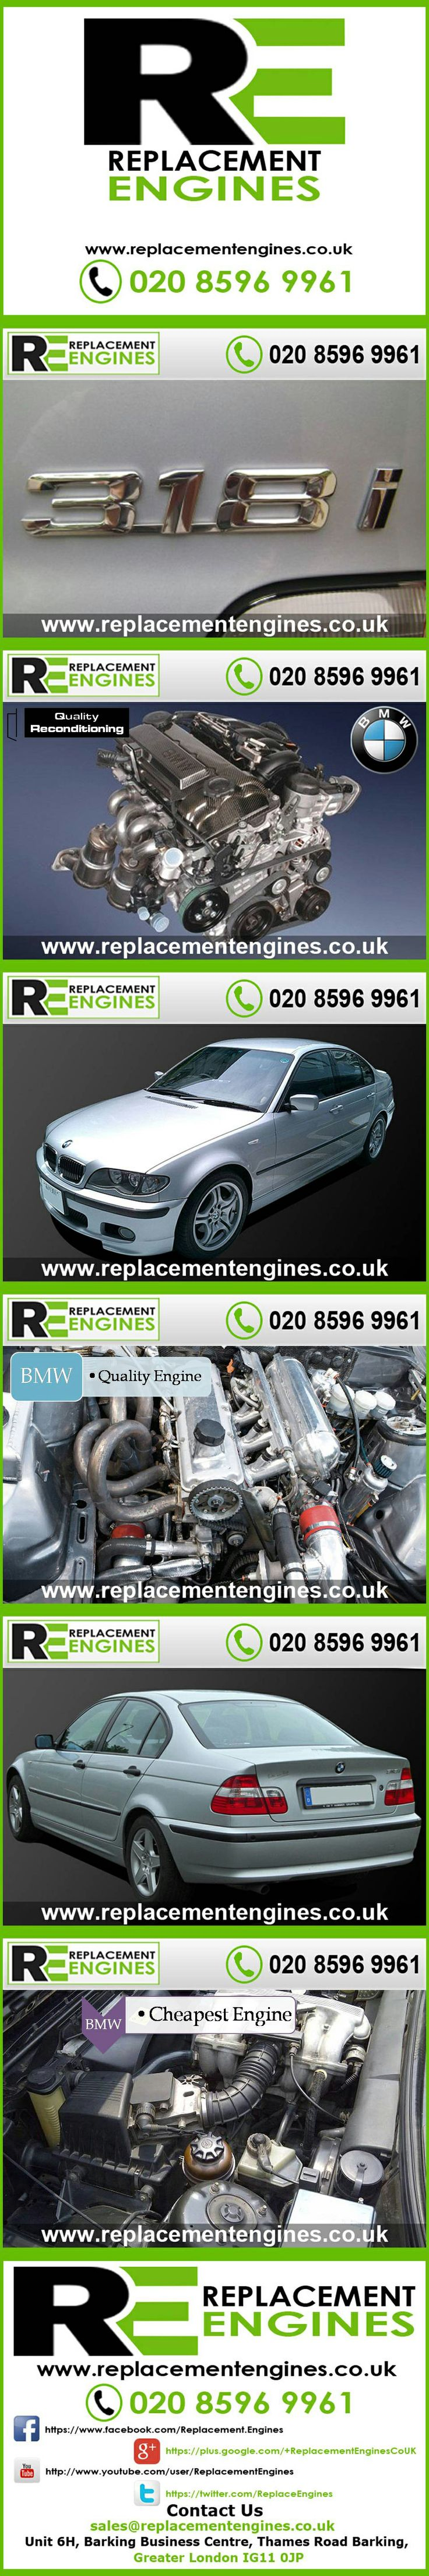 BMW 318i engines for sale at the cheapest prices, we have low mileage used & reconditioned engines in stock now, ready to be delivered to anywhere in the UK or overseas, visit Replacement Engines website here.